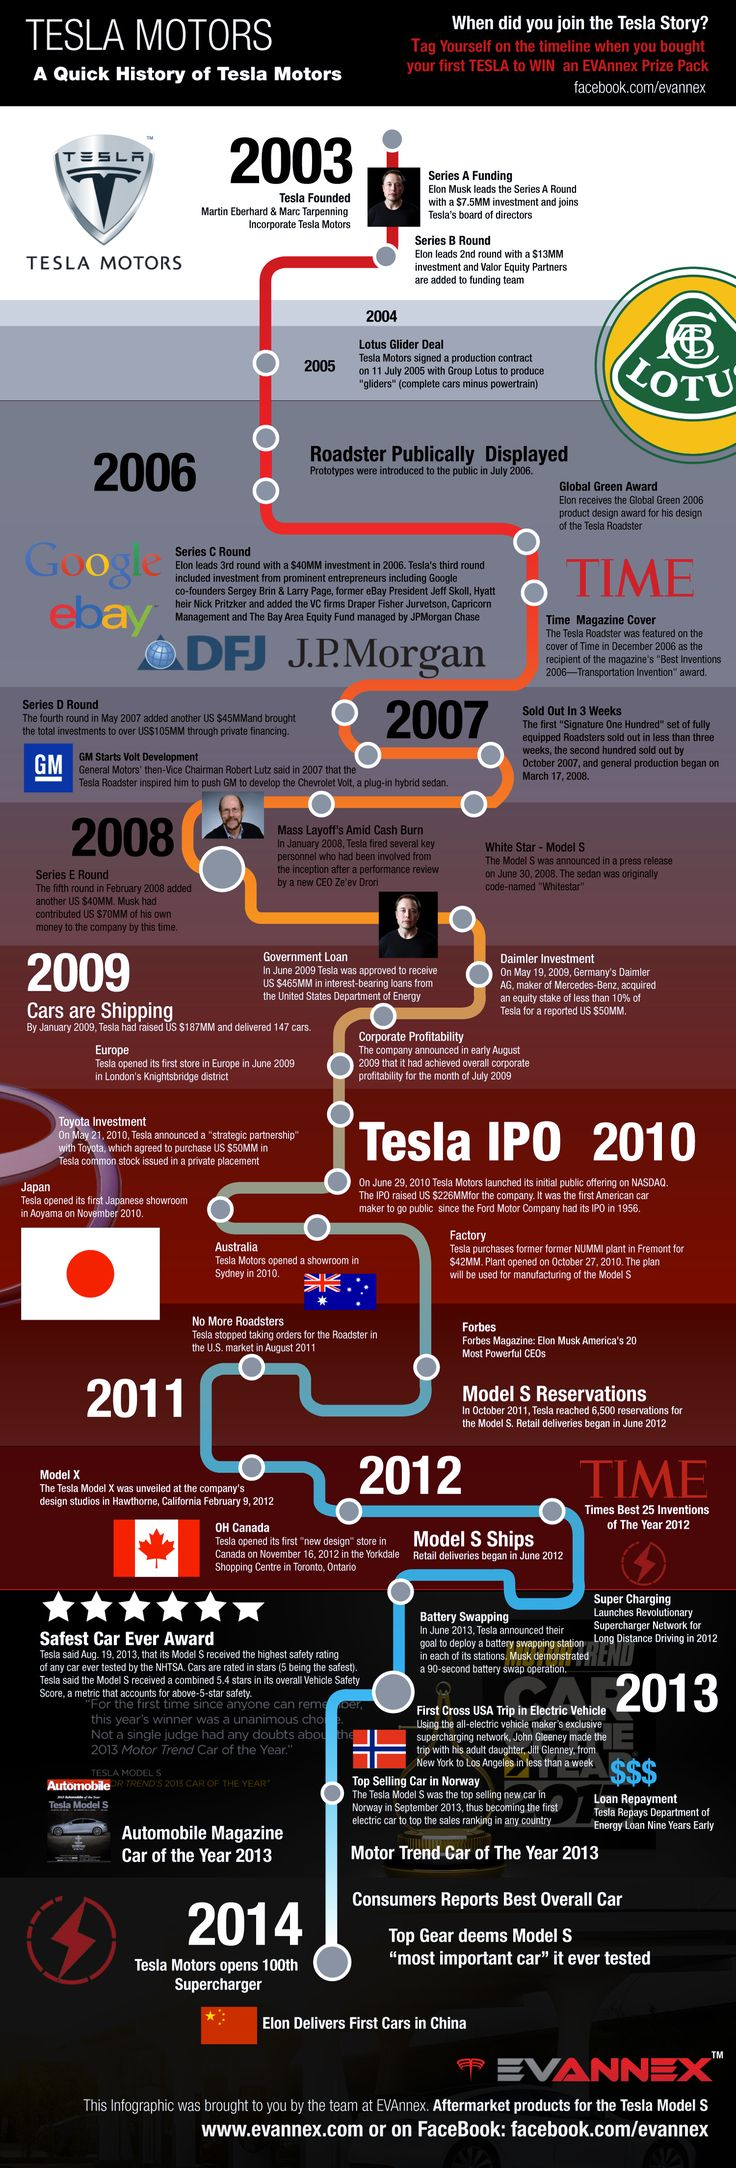 Take a look at the road that the world's preeminent electric car company took to get where it is today.